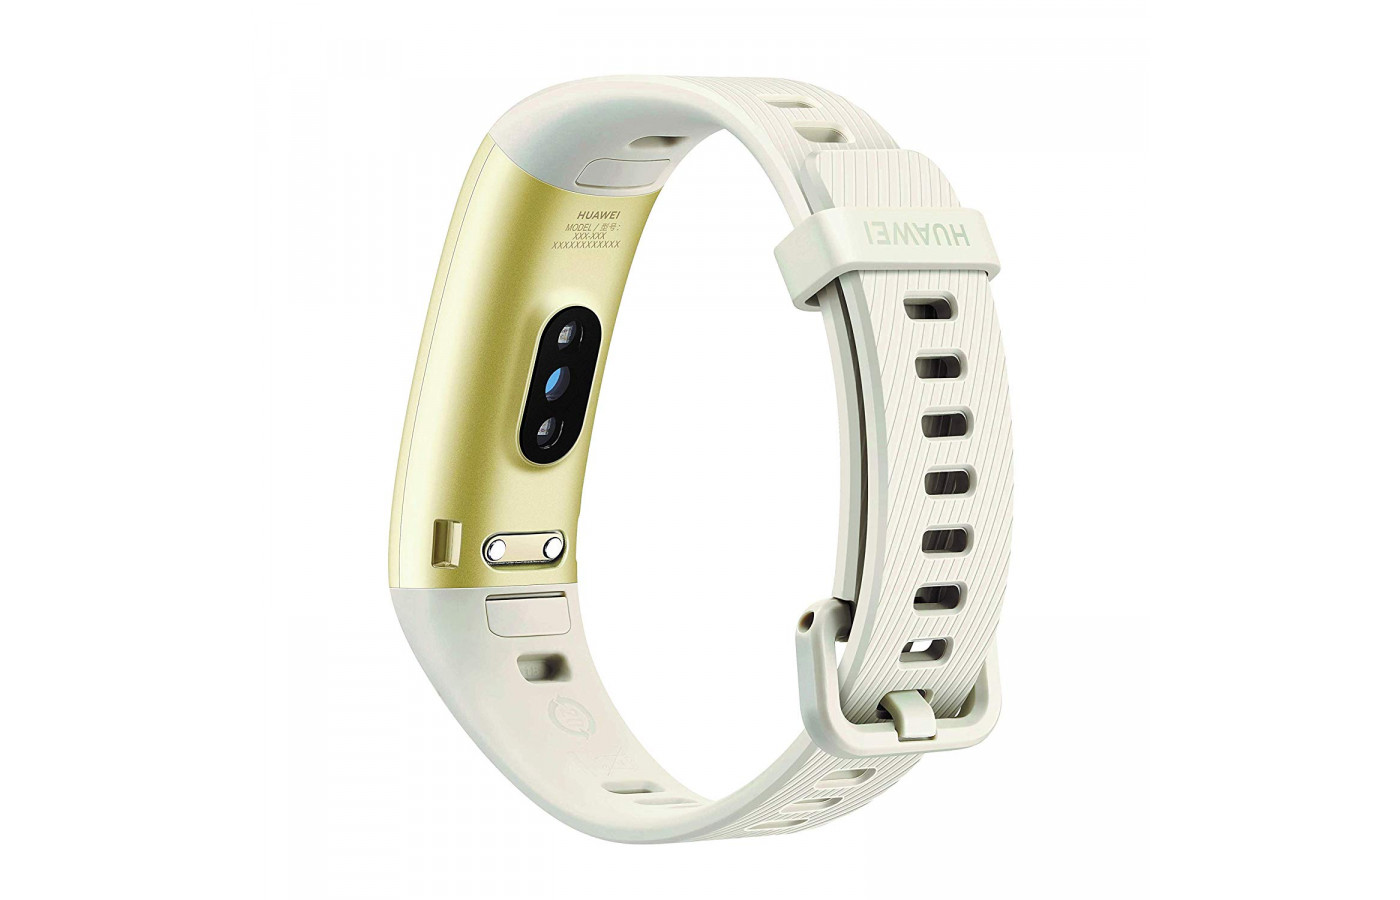 huawei band 3 back white